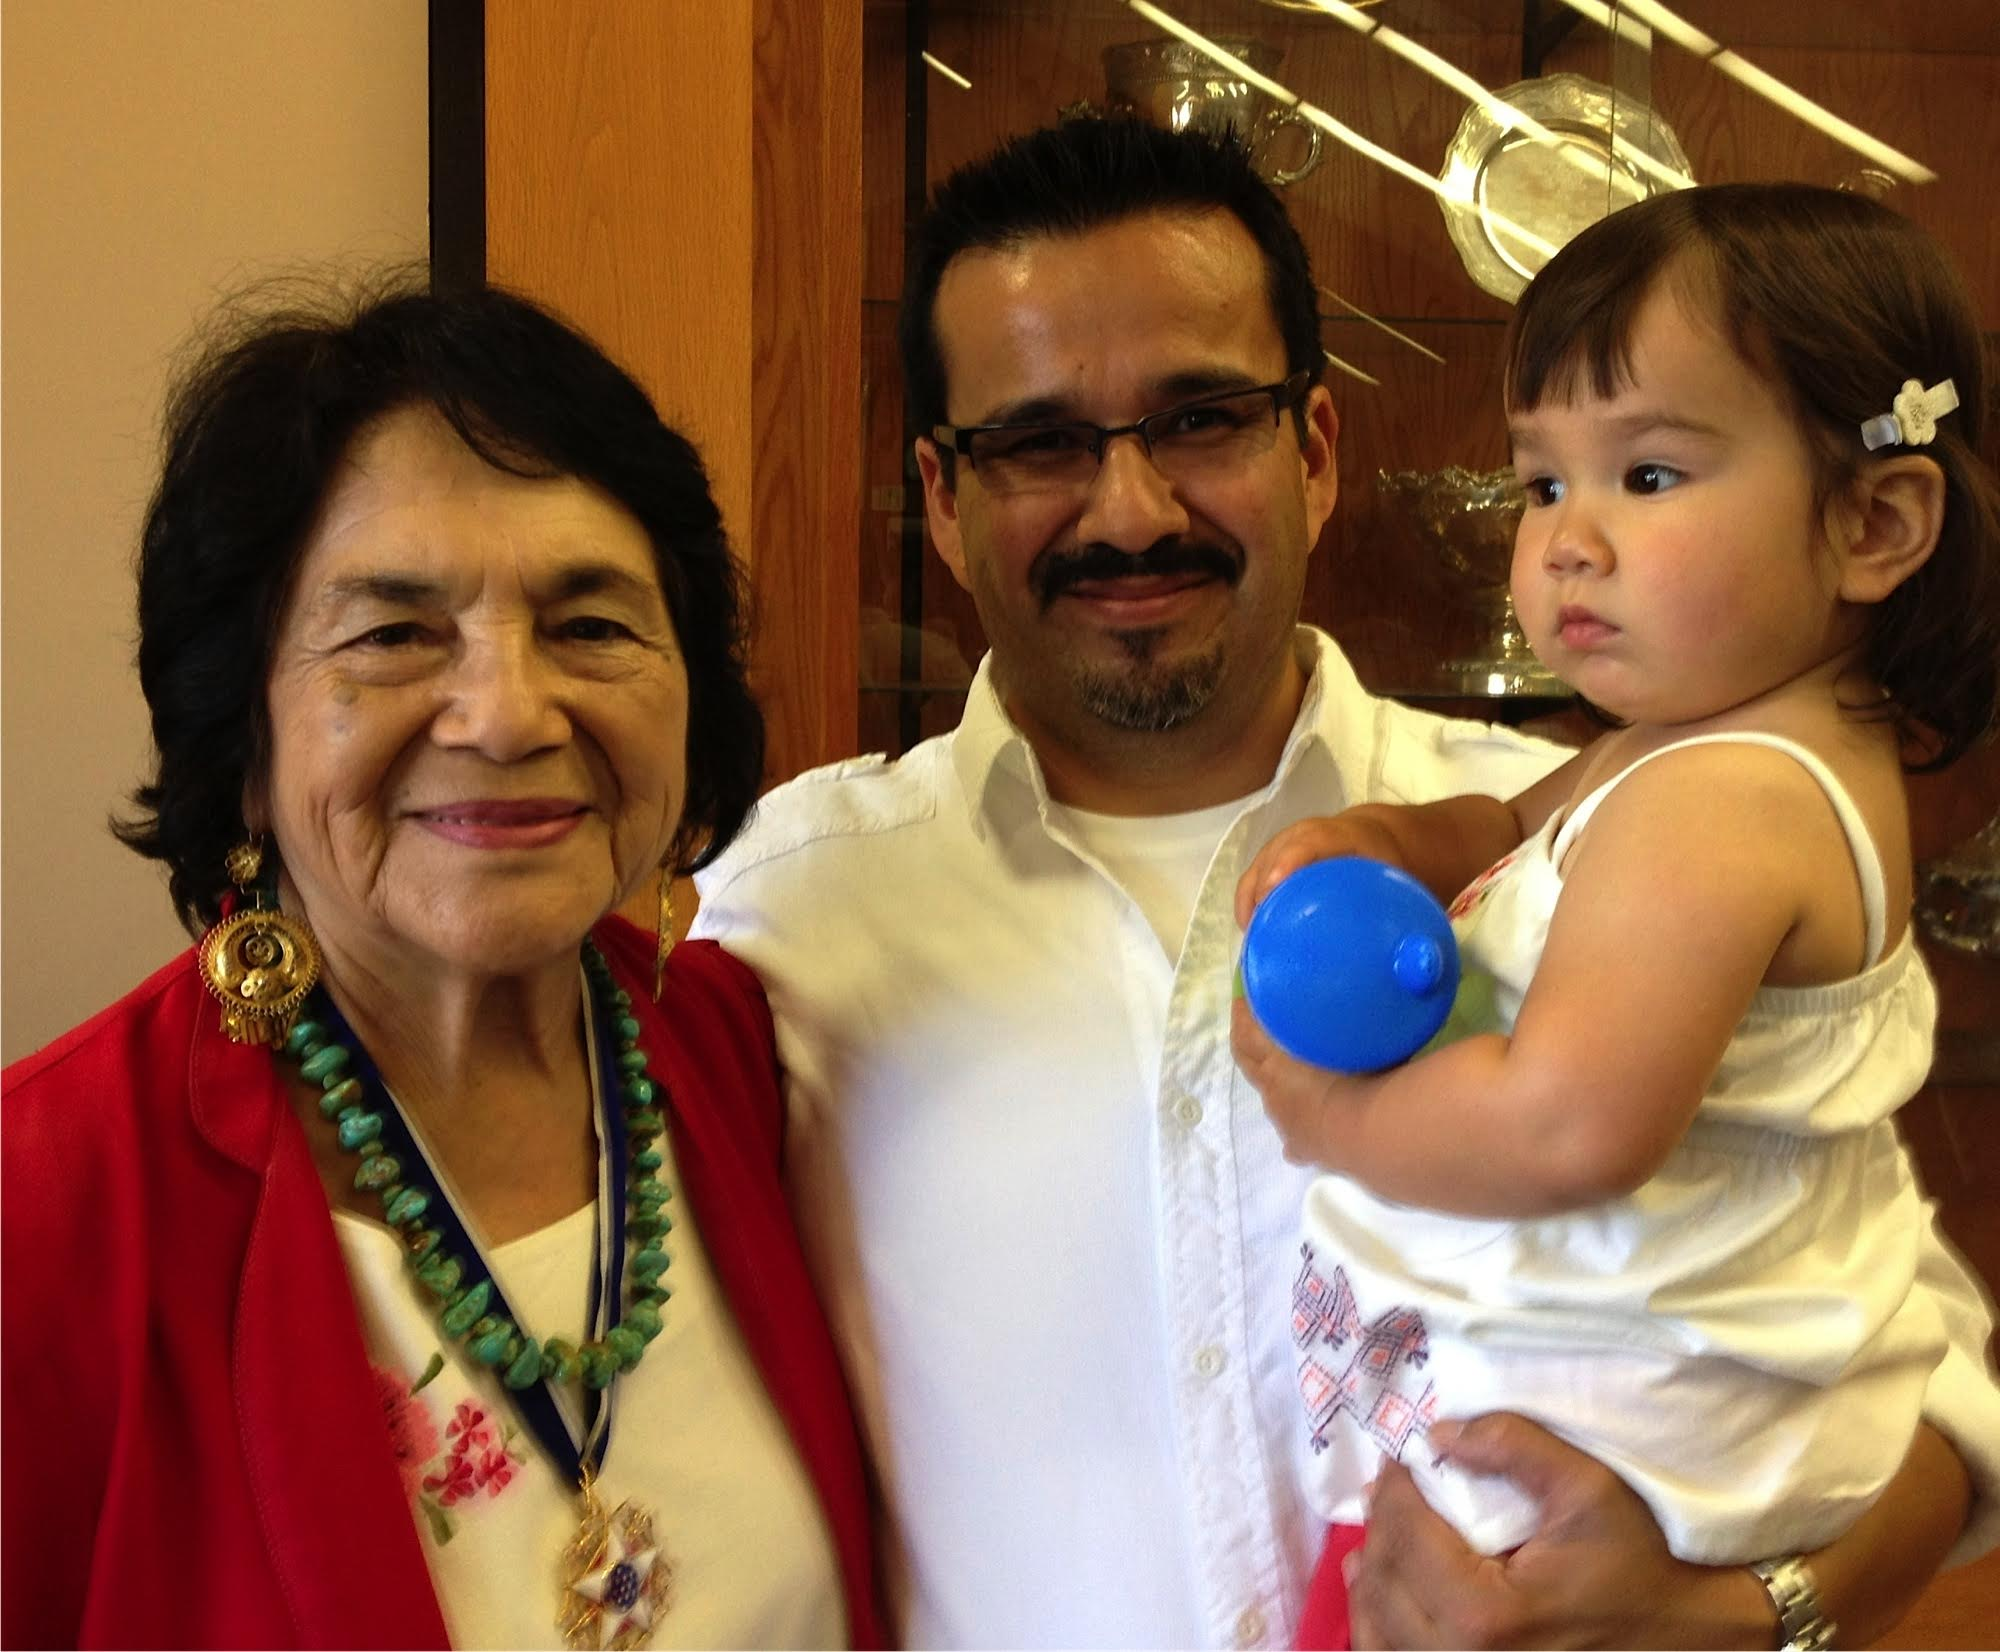 """David with civil rights activist Dolores Huerta.                       Normal    0                false    false    false       EN-US    ZH-CN    X-NONE                                                                                                                                                                                                                                                                                                                                                                                                                                                                                                                                                                                                                                                                                                                                                                                                                                                                                                                                                                                                                                                                                                                                                                                                                                                                                          /* Style Definitions */ table.MsoNormalTable {mso-style-name:""""Table Normal""""; mso-tstyle-rowband-size:0; mso-tstyle-colband-size:0; mso-style-noshow:yes; mso-style-priority:99; mso-style-parent:""""""""; mso-padding-alt:0in 5.4pt 0in 5.4pt; mso-para-margin:0in; mso-para-margin-bottom:.0001pt; mso-pagination:widow-orphan; font-size:12.0pt; font-family:Calibri; mso-ascii-font-family:Calibri; mso-ascii-theme-font:minor-latin; mso-hansi-font-family:Calibri; mso-hansi-theme-font:minor-latin;}         Many students who come from low-income, first-gen, or other disadvantaged backgrounds are put off by the gatekee"""